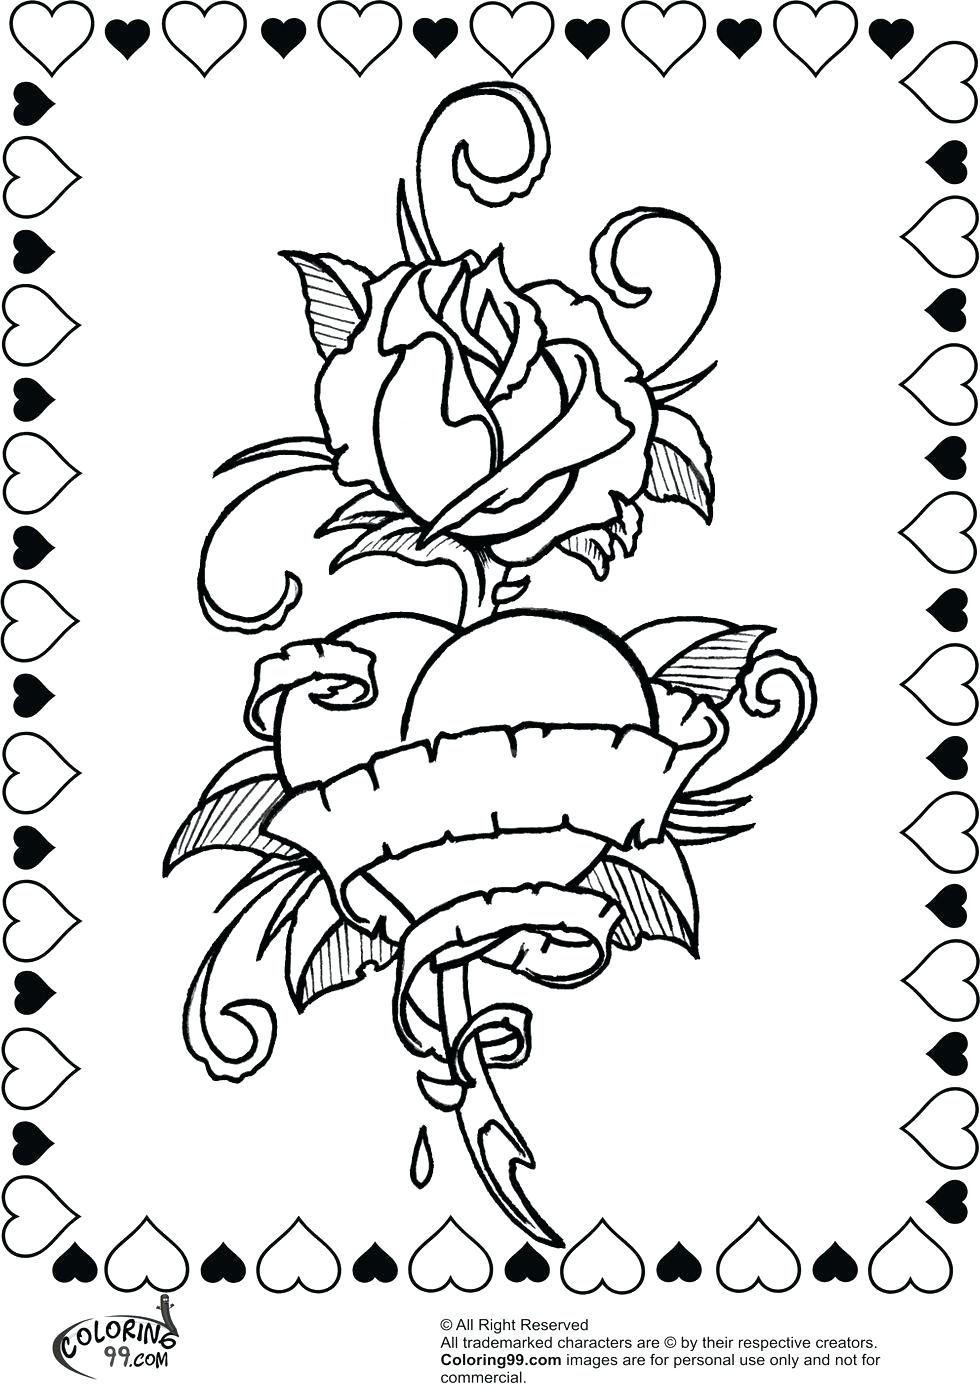 Roses And Hearts Coloring Pages Drawing Roses And Hearts Crunchprintco